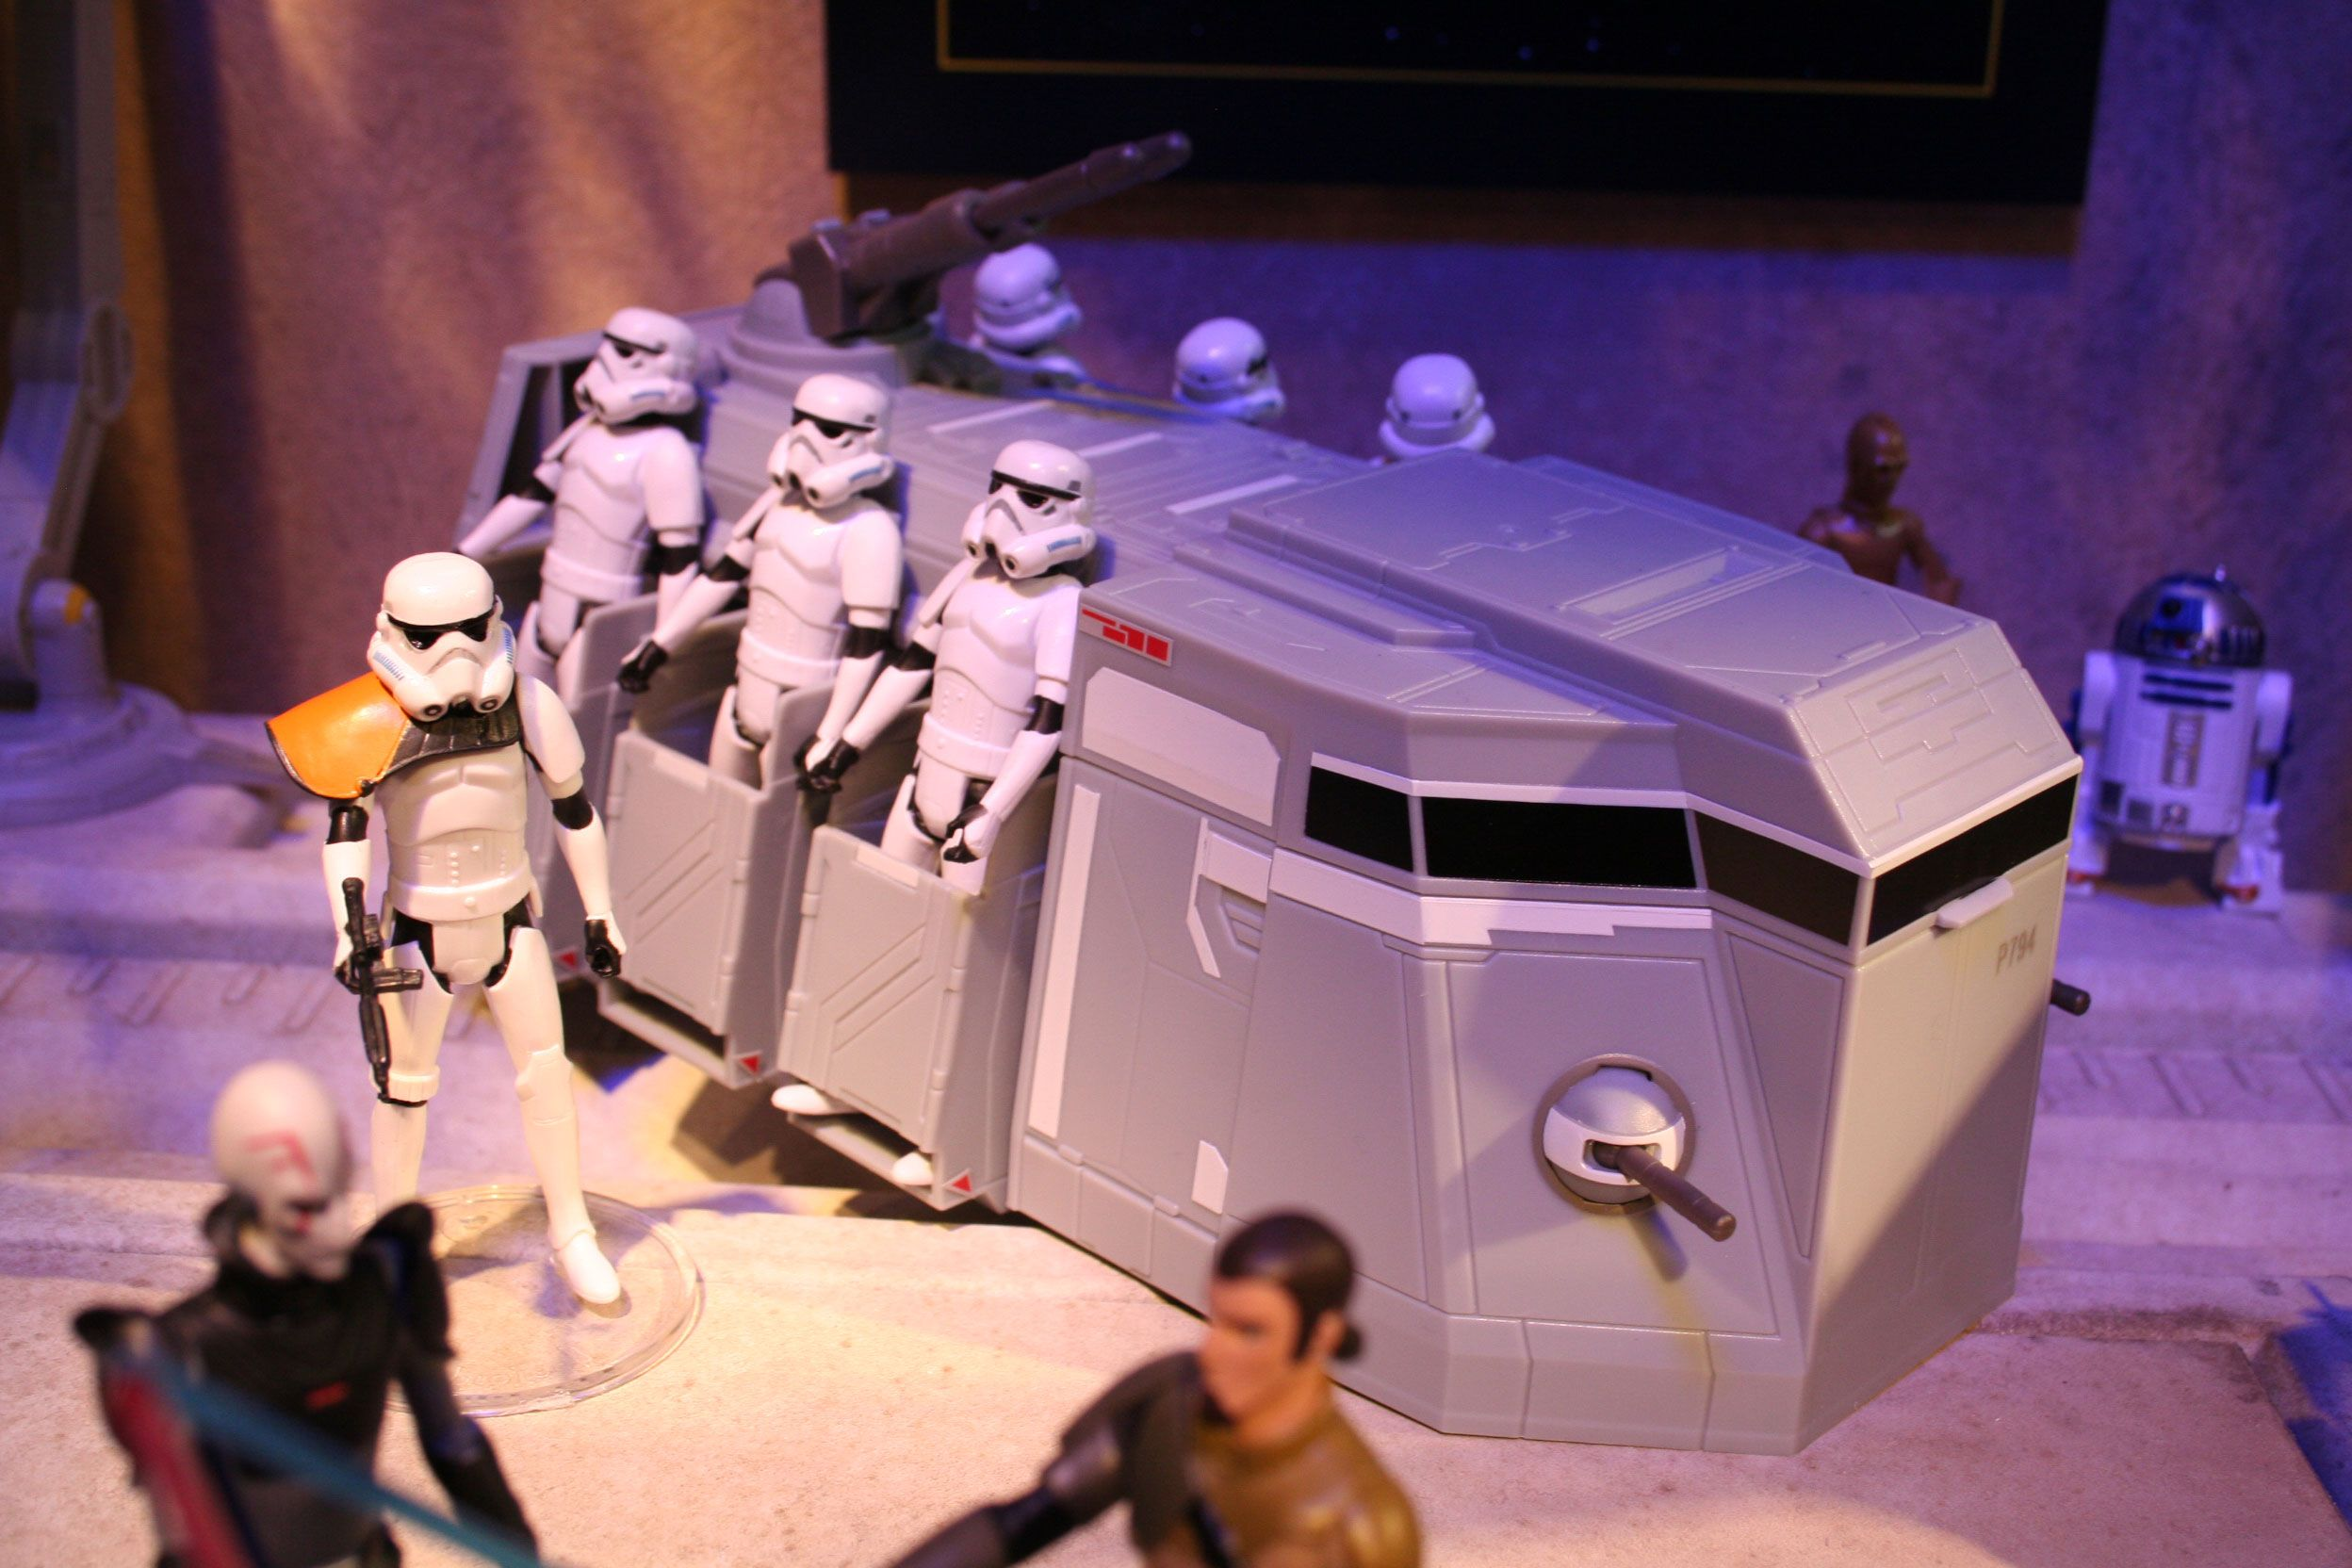 New Star Wars Toys : Star wars hasbro toys revealed images of bladebuilders